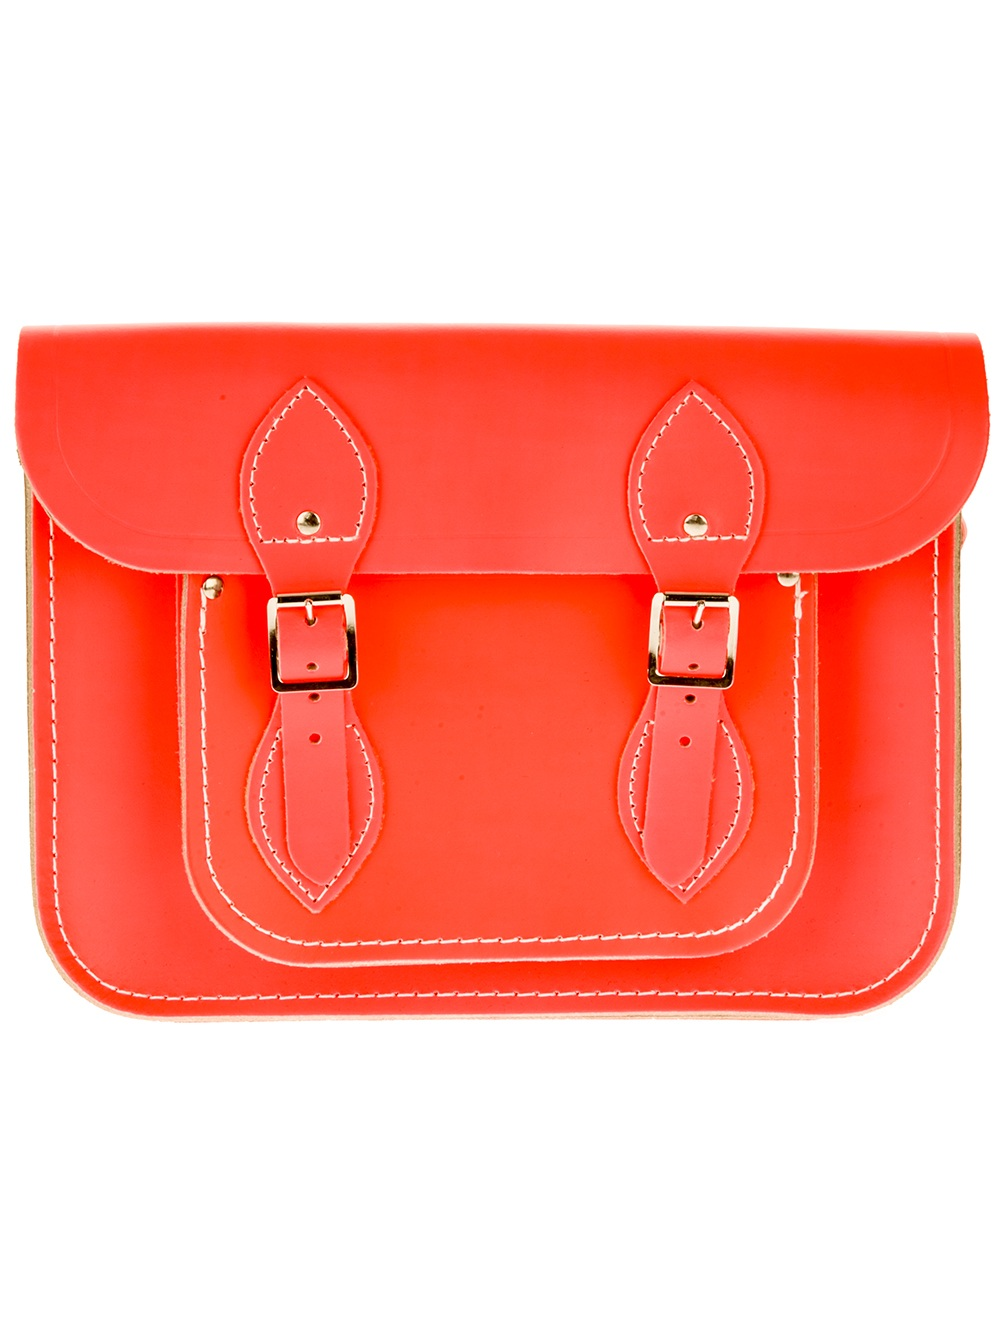 39e9514f4797a Lyst - Cambridge Satchel Company Fluoro 11 Inch Satchel in Orange